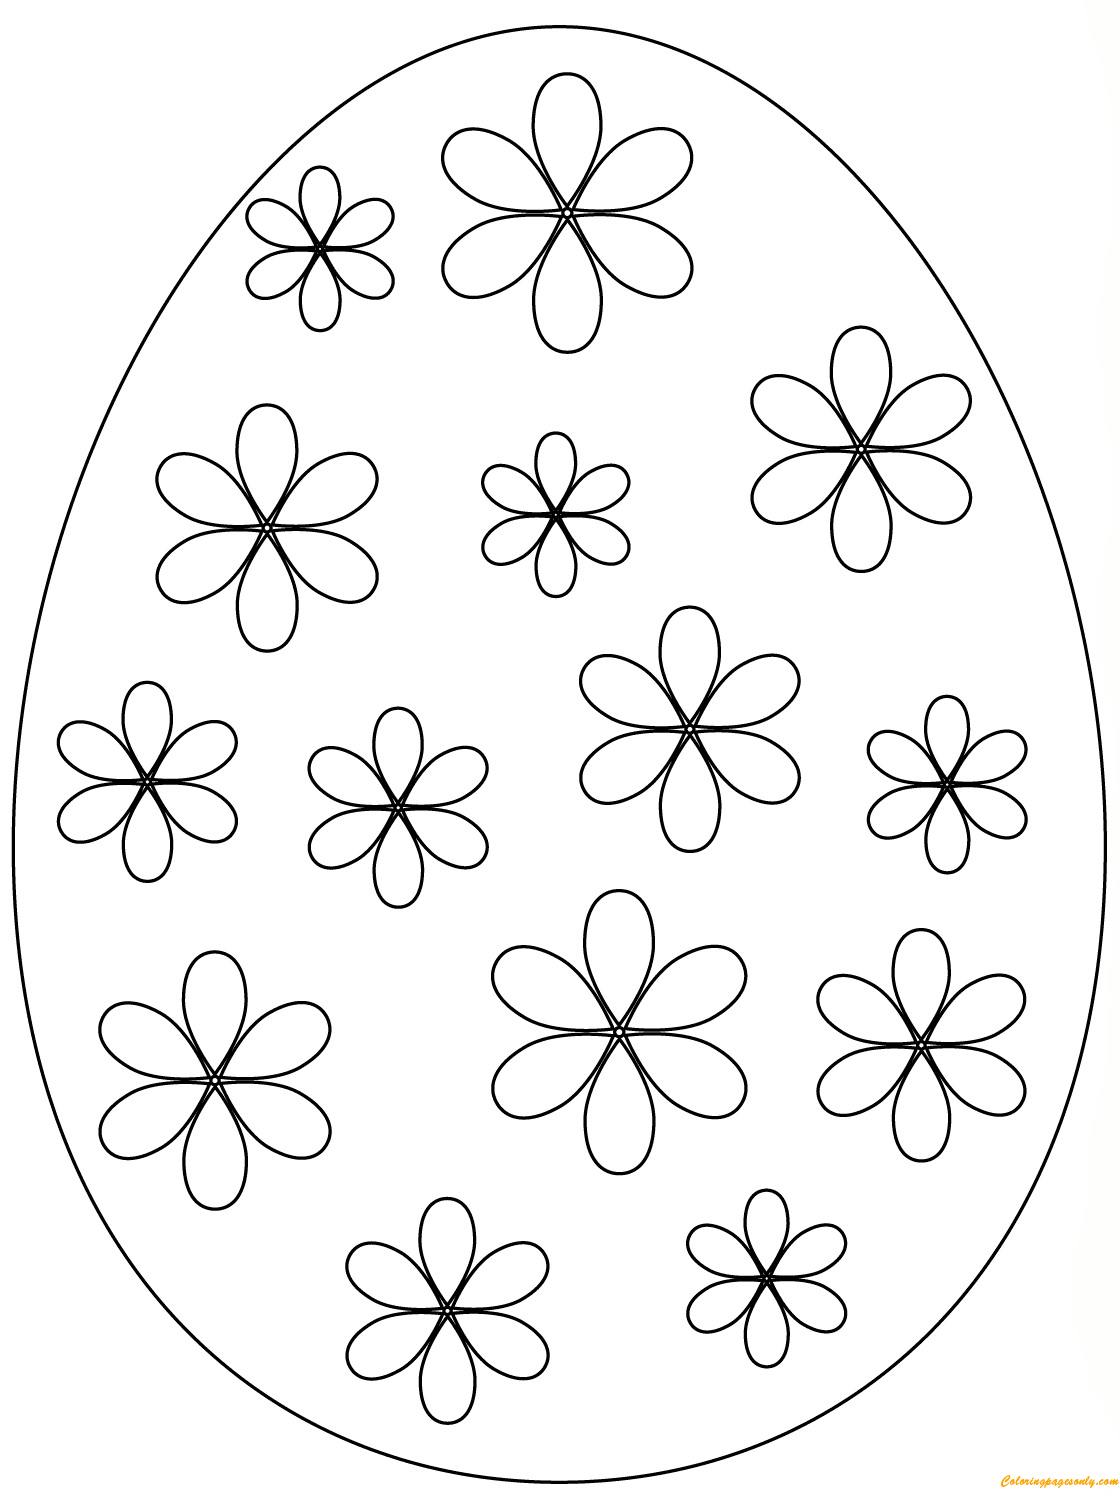 easter eggs coloring page easter egg simple flowers coloring page free coloring coloring eggs page easter